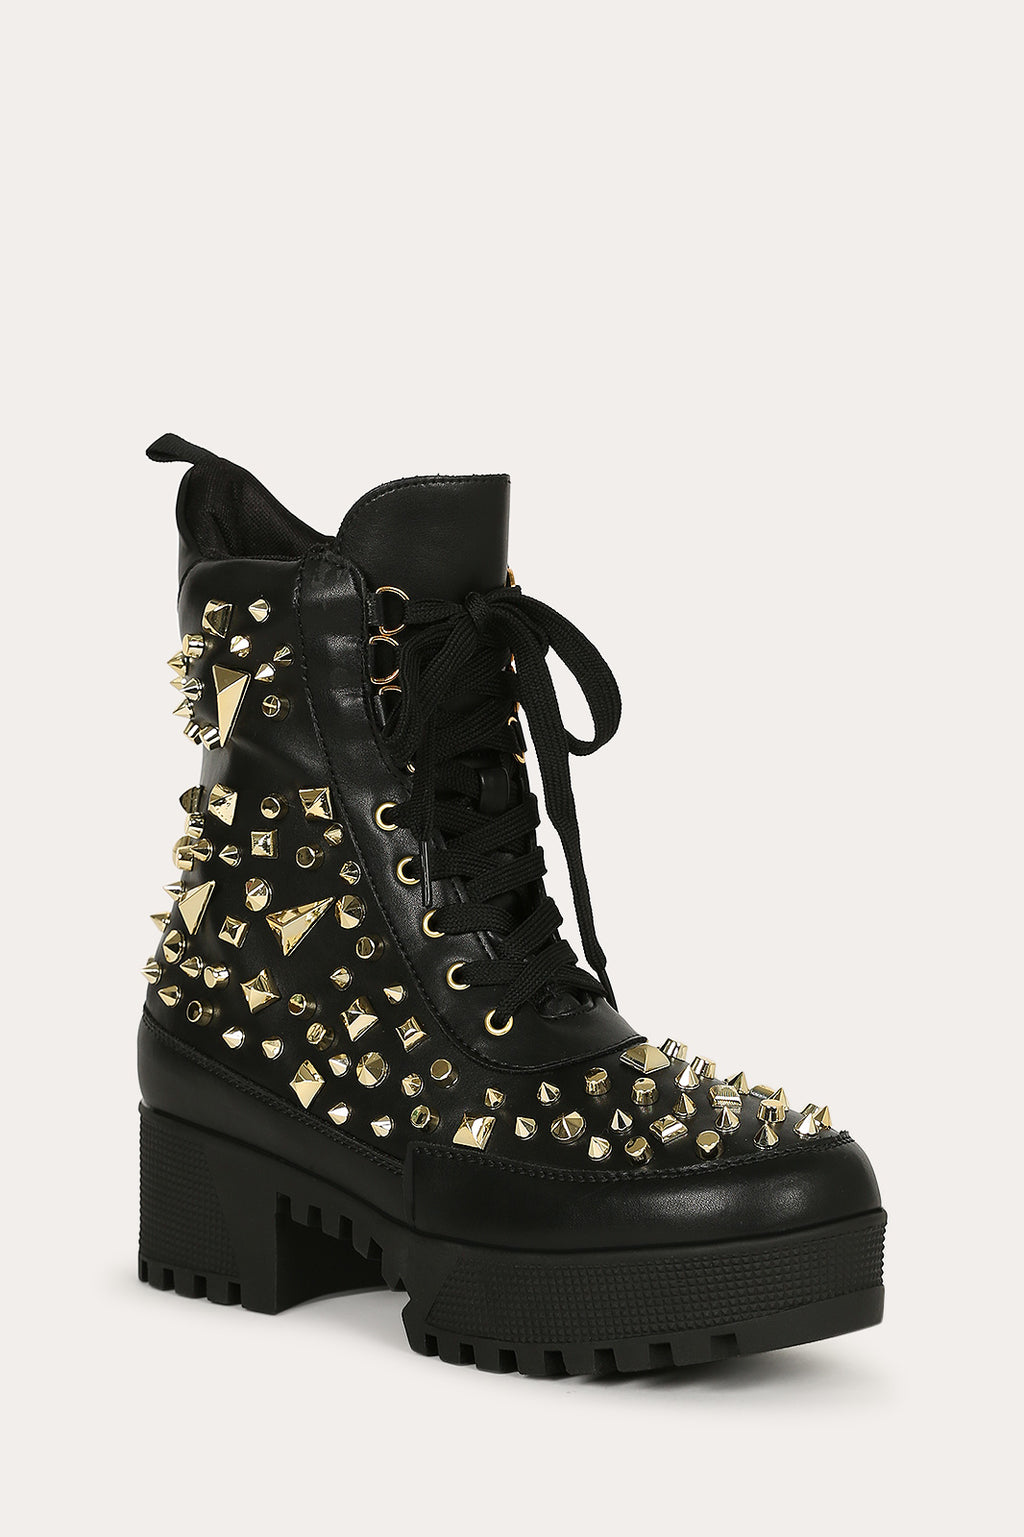 Cape Robbin Night Sky Black Studded Combat Boot